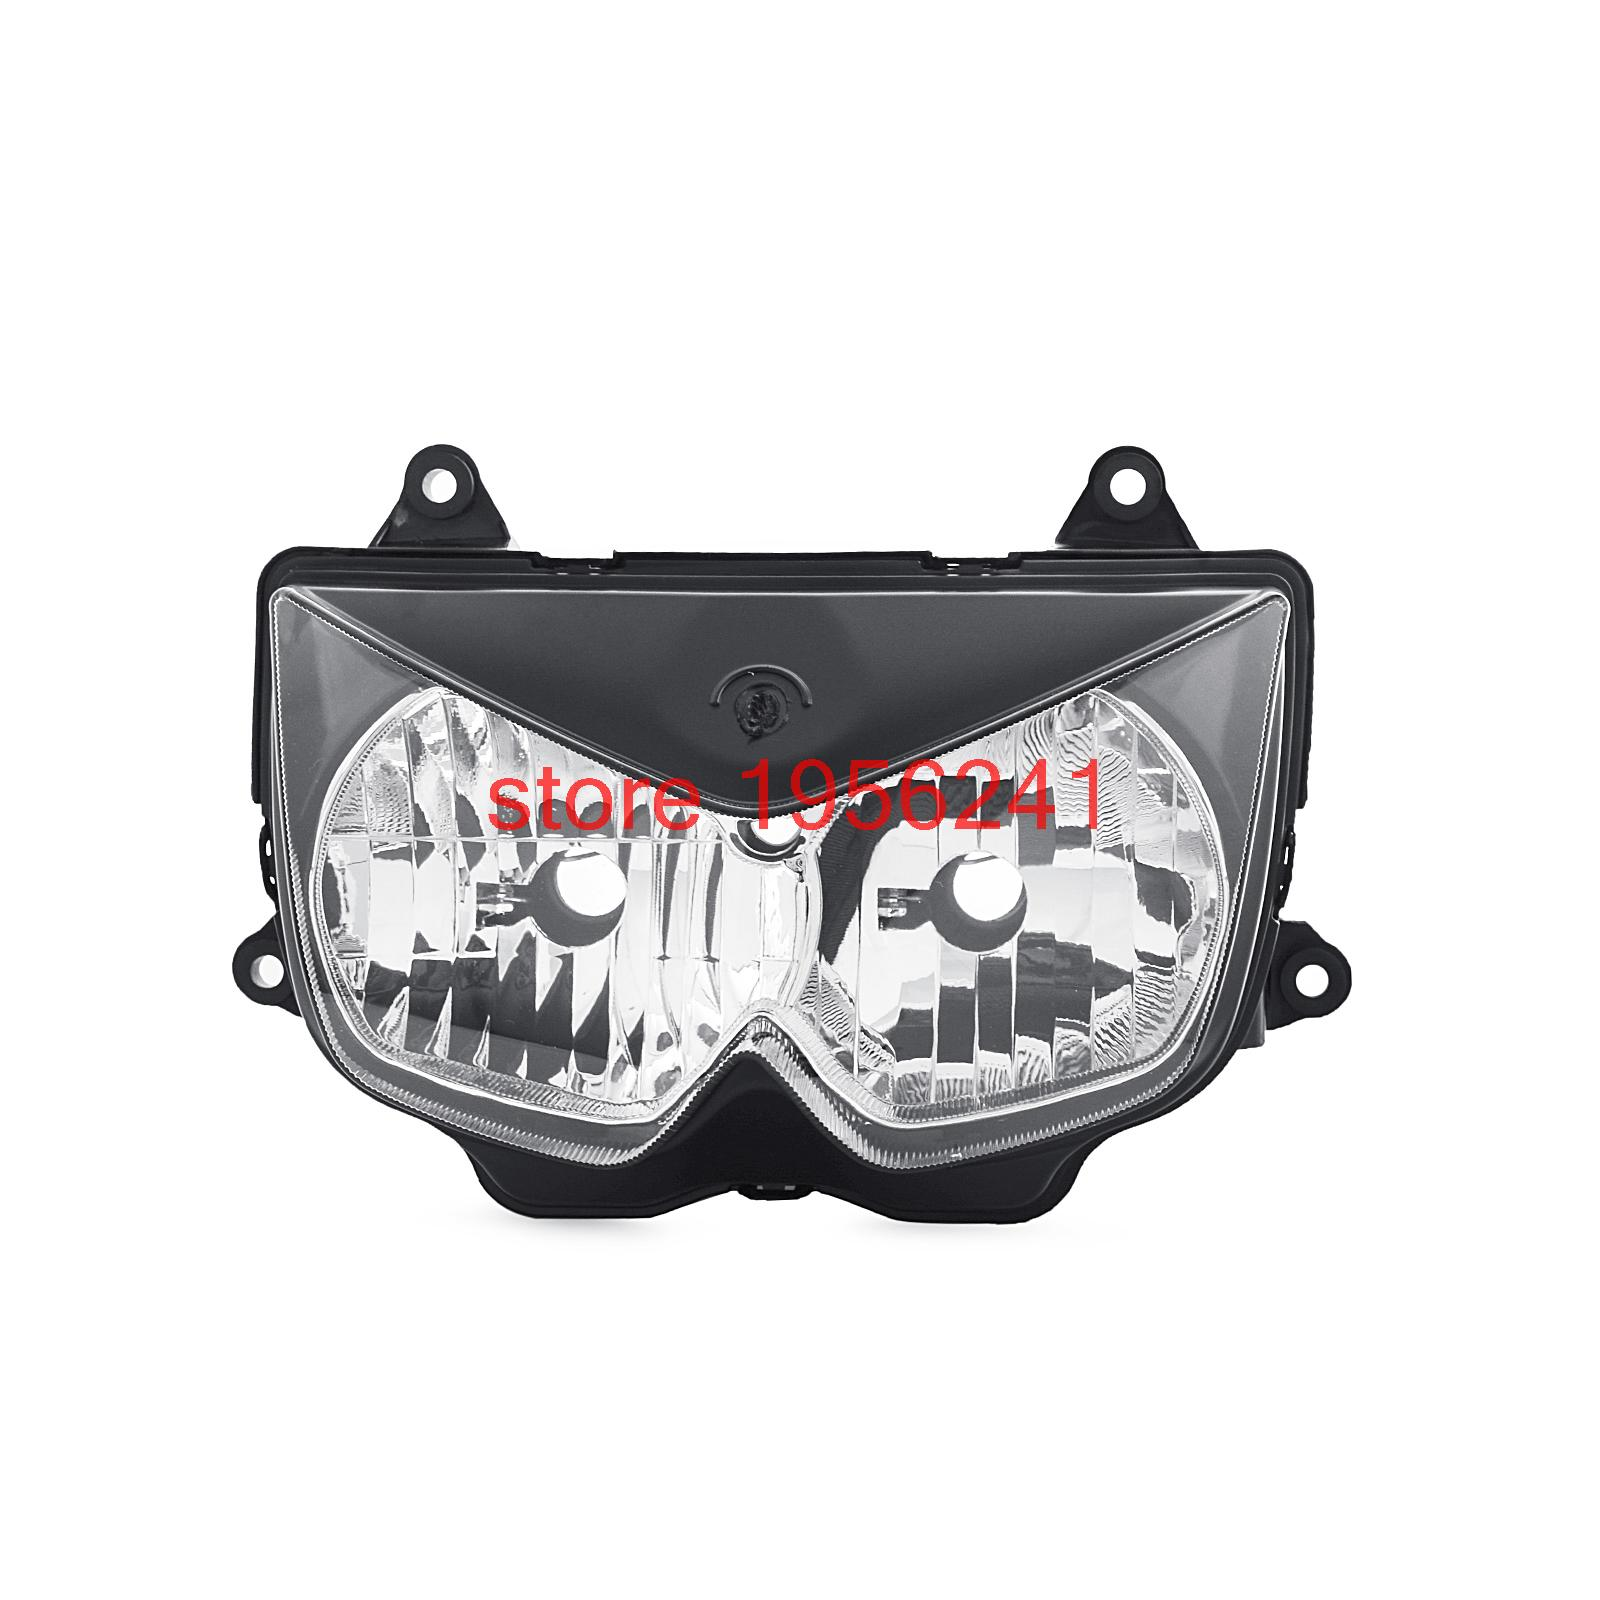 Motorcycle Clear Lens Headlight Head light Headlamp Assembly For Kawasaki Z750 ZR750 2004 2005 2006 Z 750 750R|assembly - title=